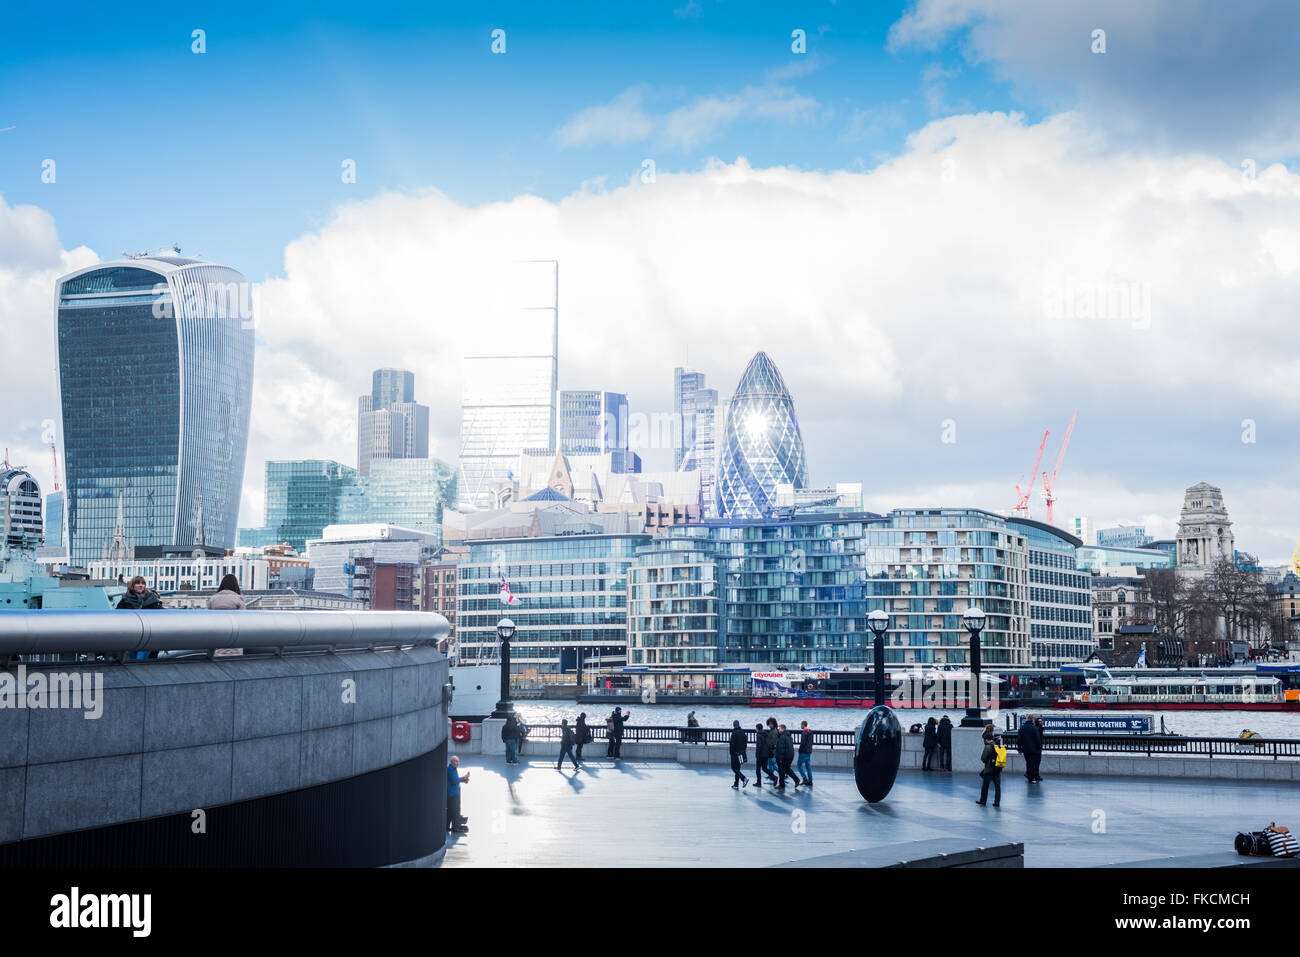 The financial district as viewed from across the River Thames, UK - Stock Image